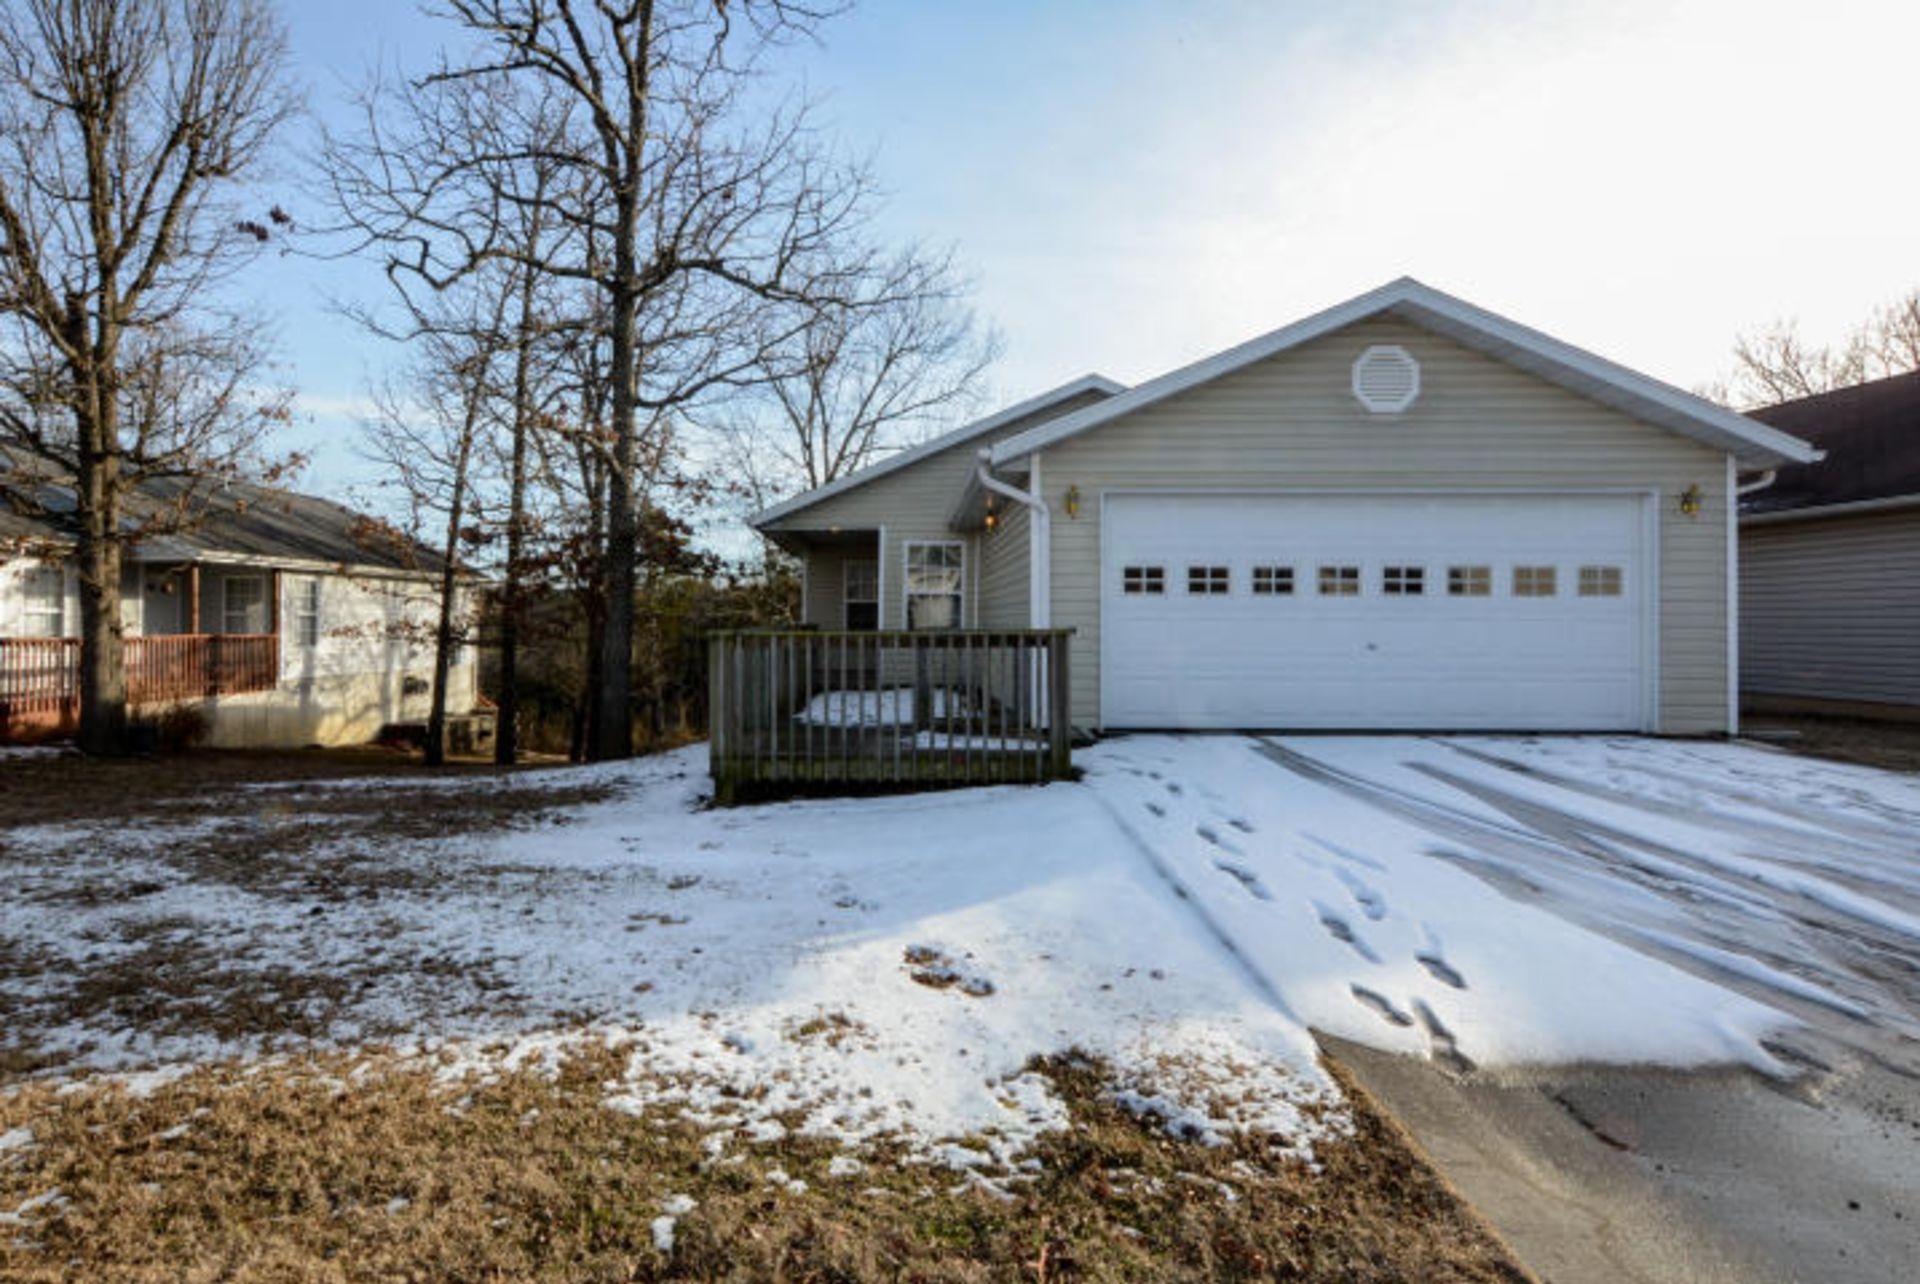 Remodeled Home for Sale in Branson, MO!!!!